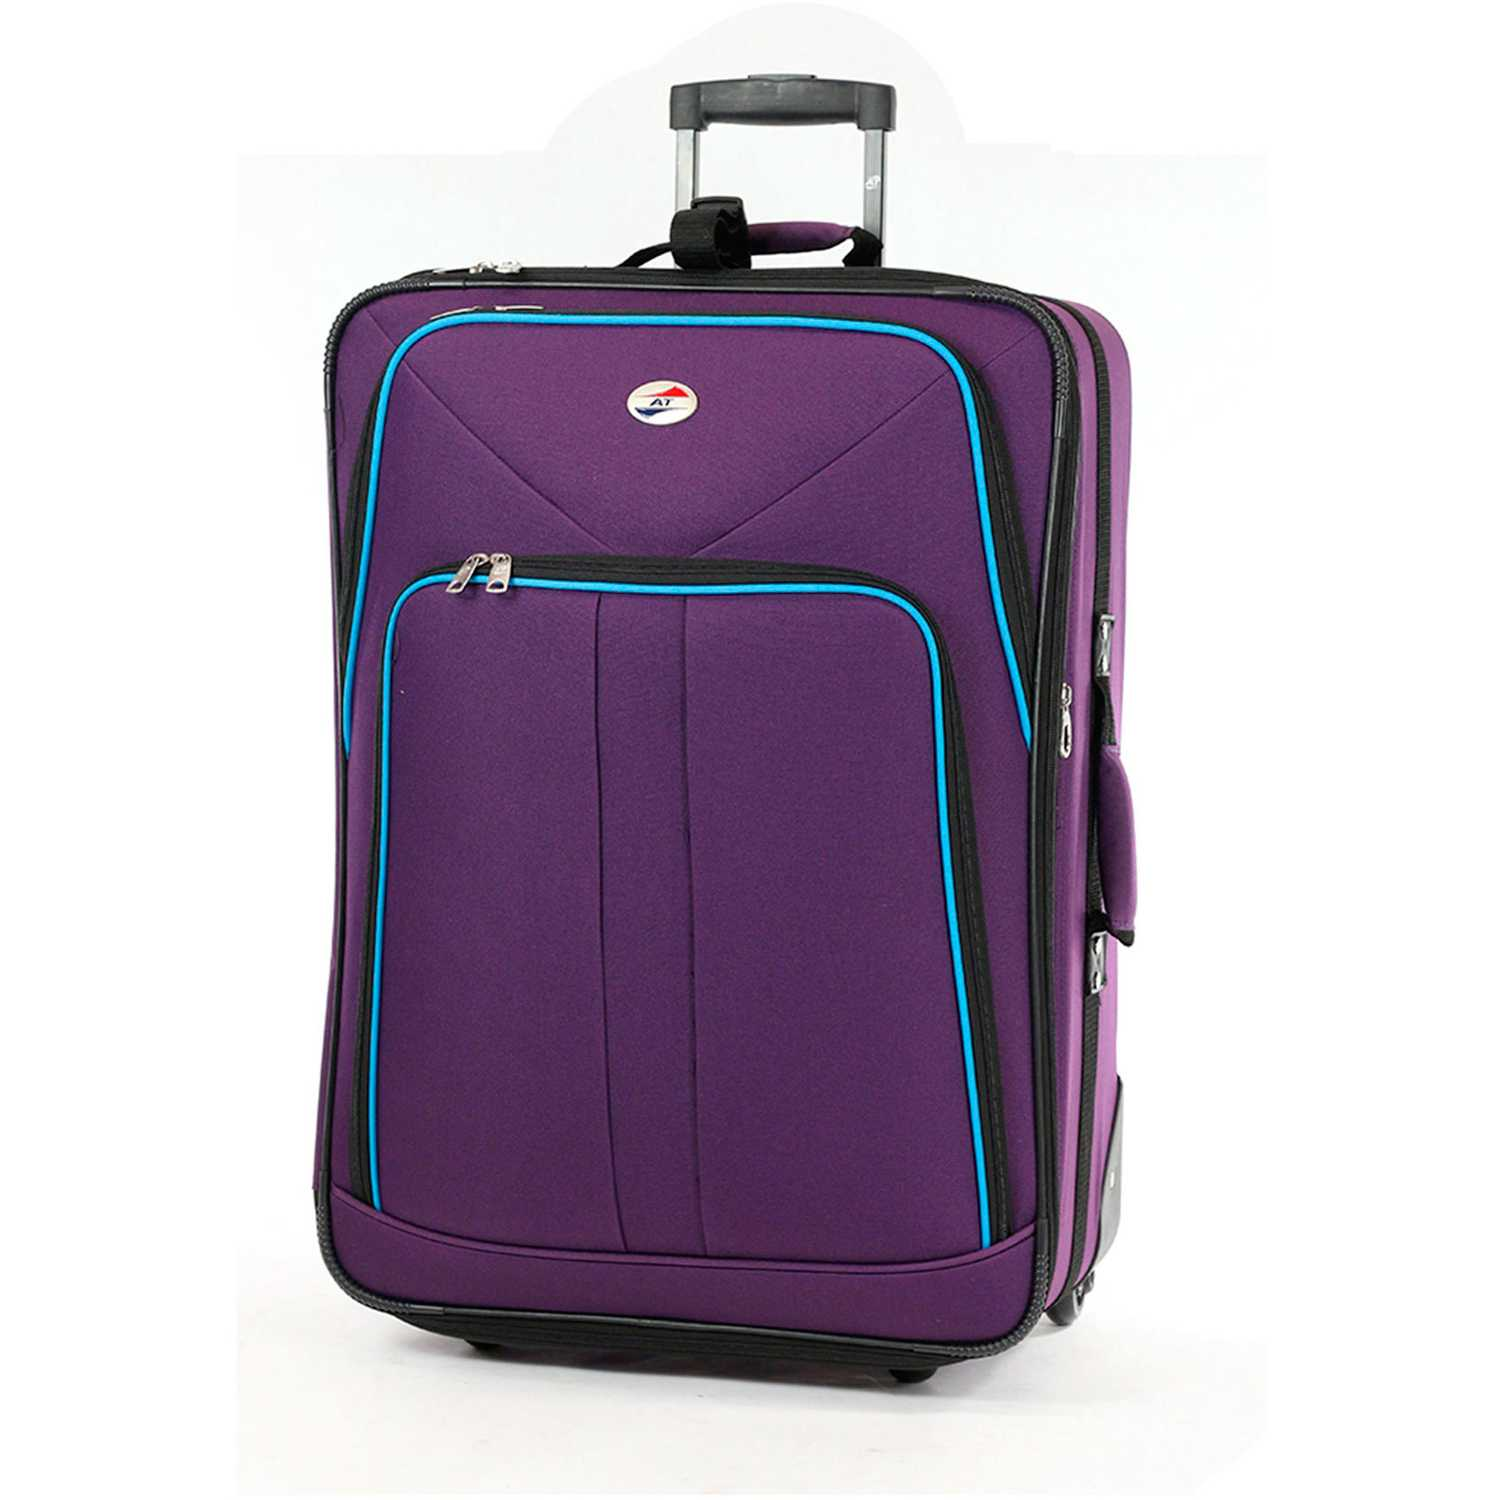 American tourister upright 25 purple tour ii Morado Portafolios